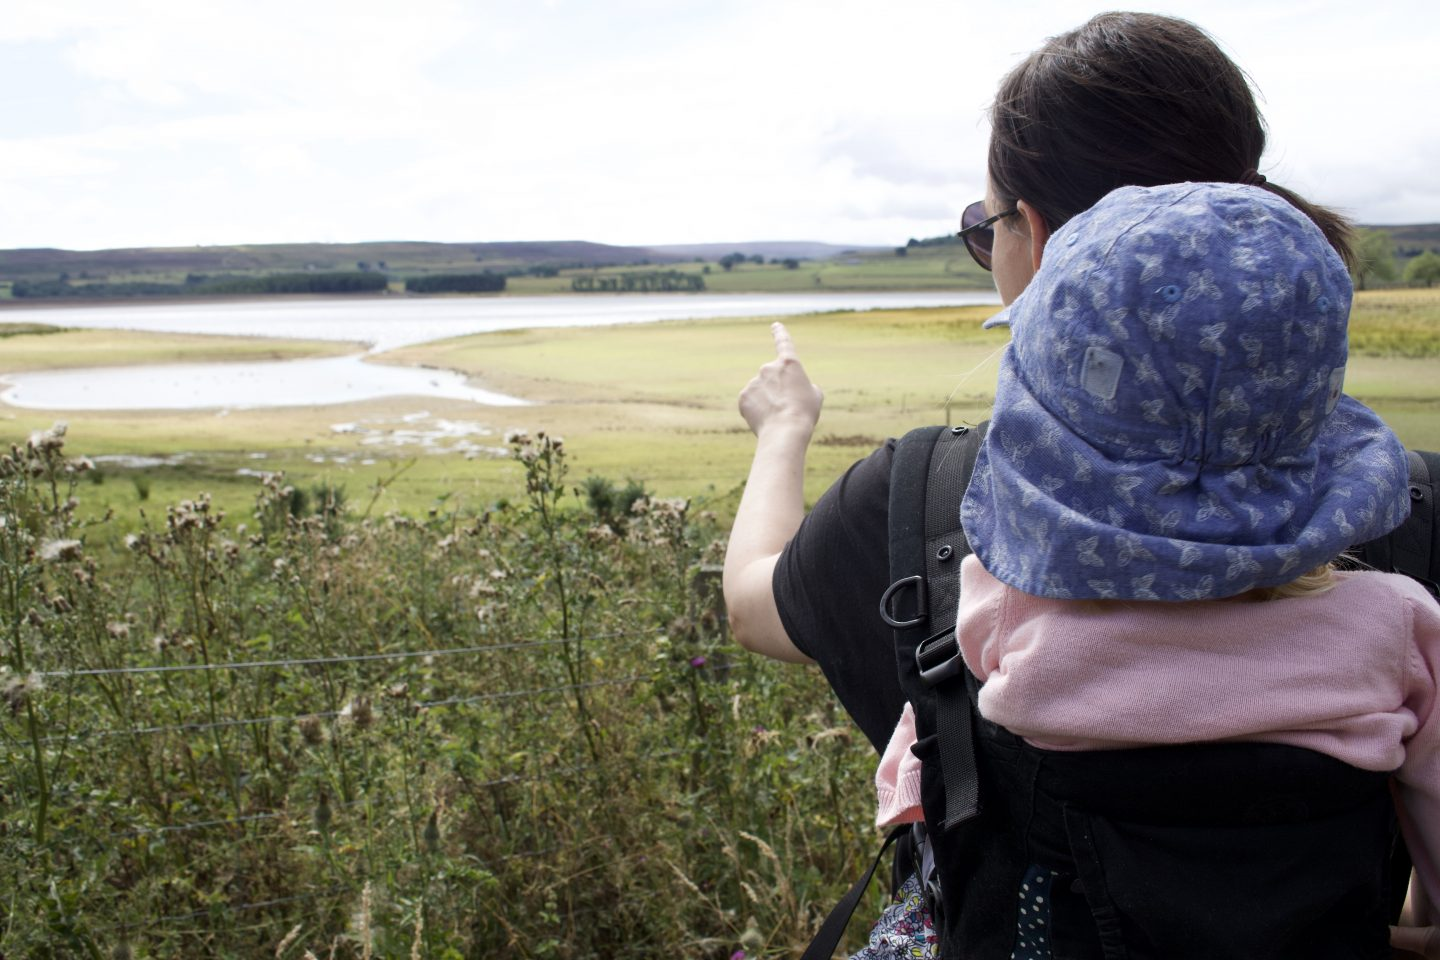 A woman carrying a toddler in a baby carrier on her back whilst pointing at the reservoir